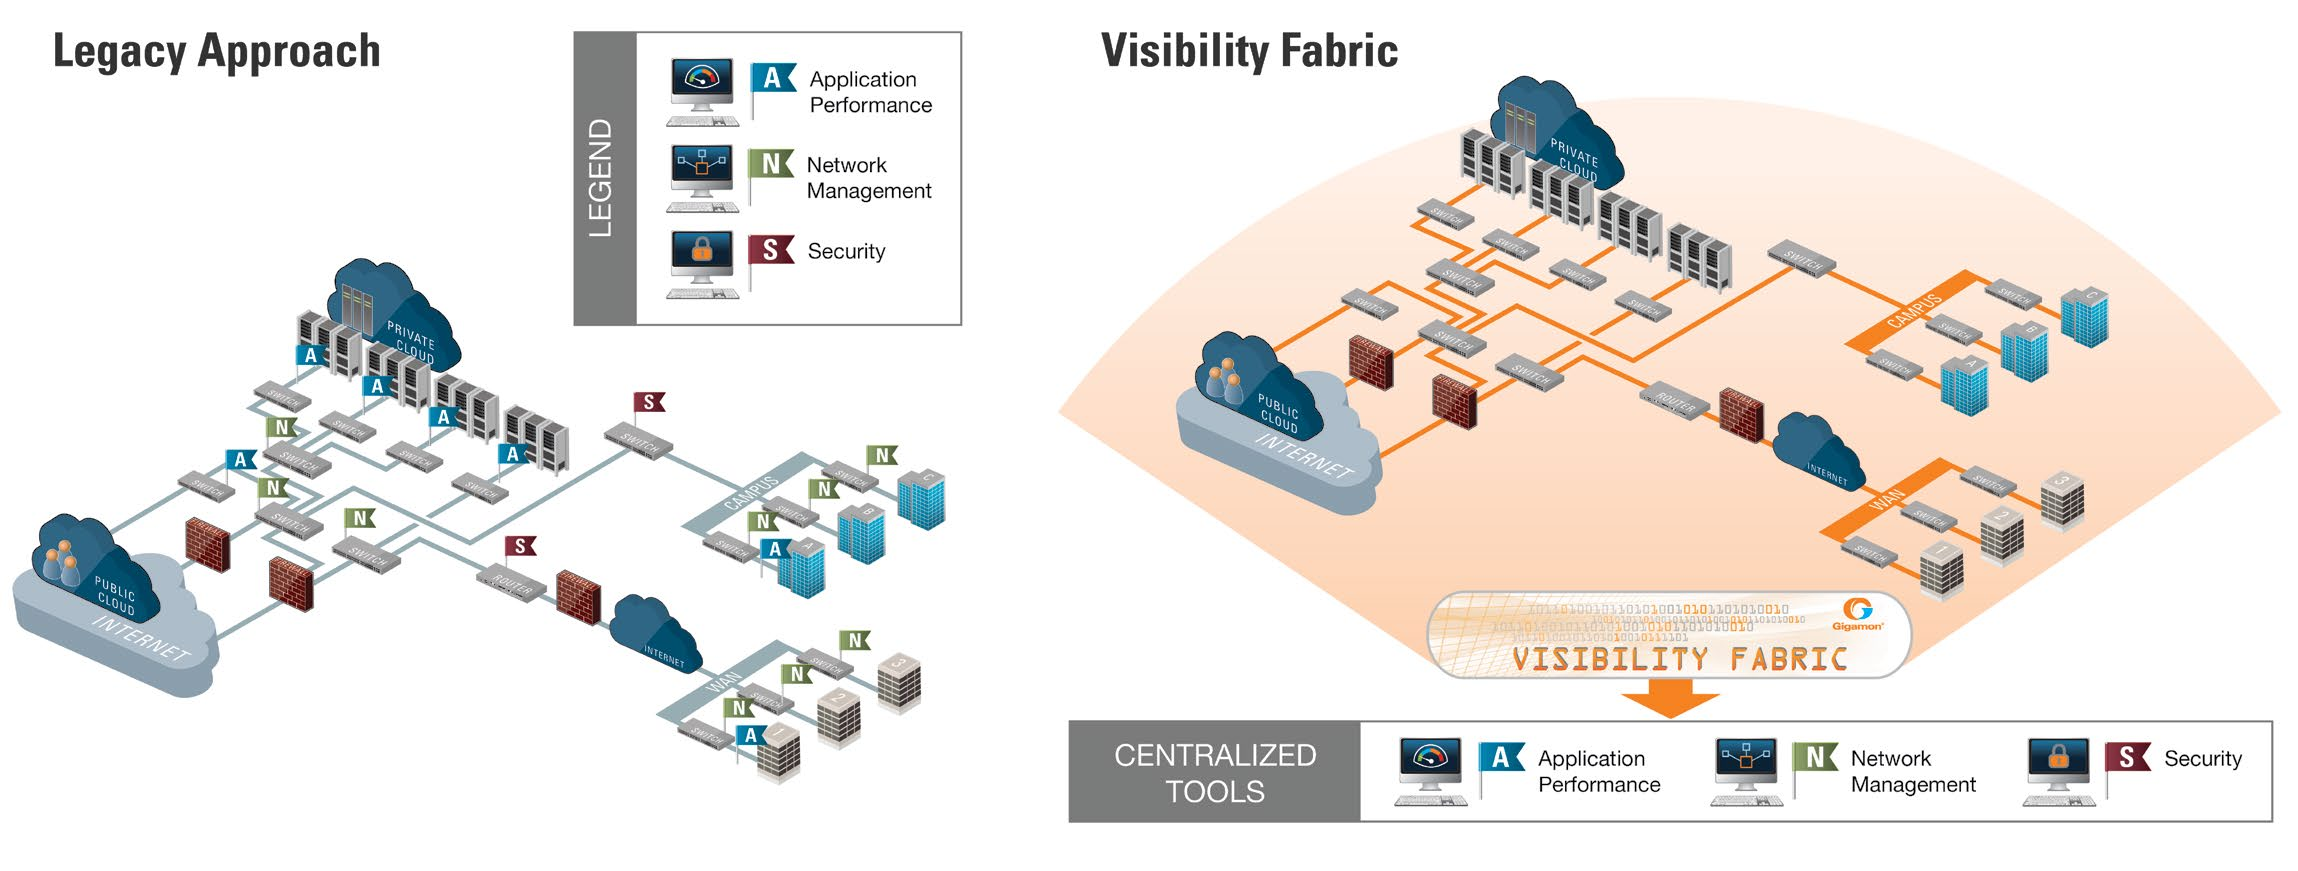 Figure 3: Legacy approach of decentralized tools compared to a Visibility Fabric where tools can be centralized Agility React dynamically to threats As part of the management and operation of